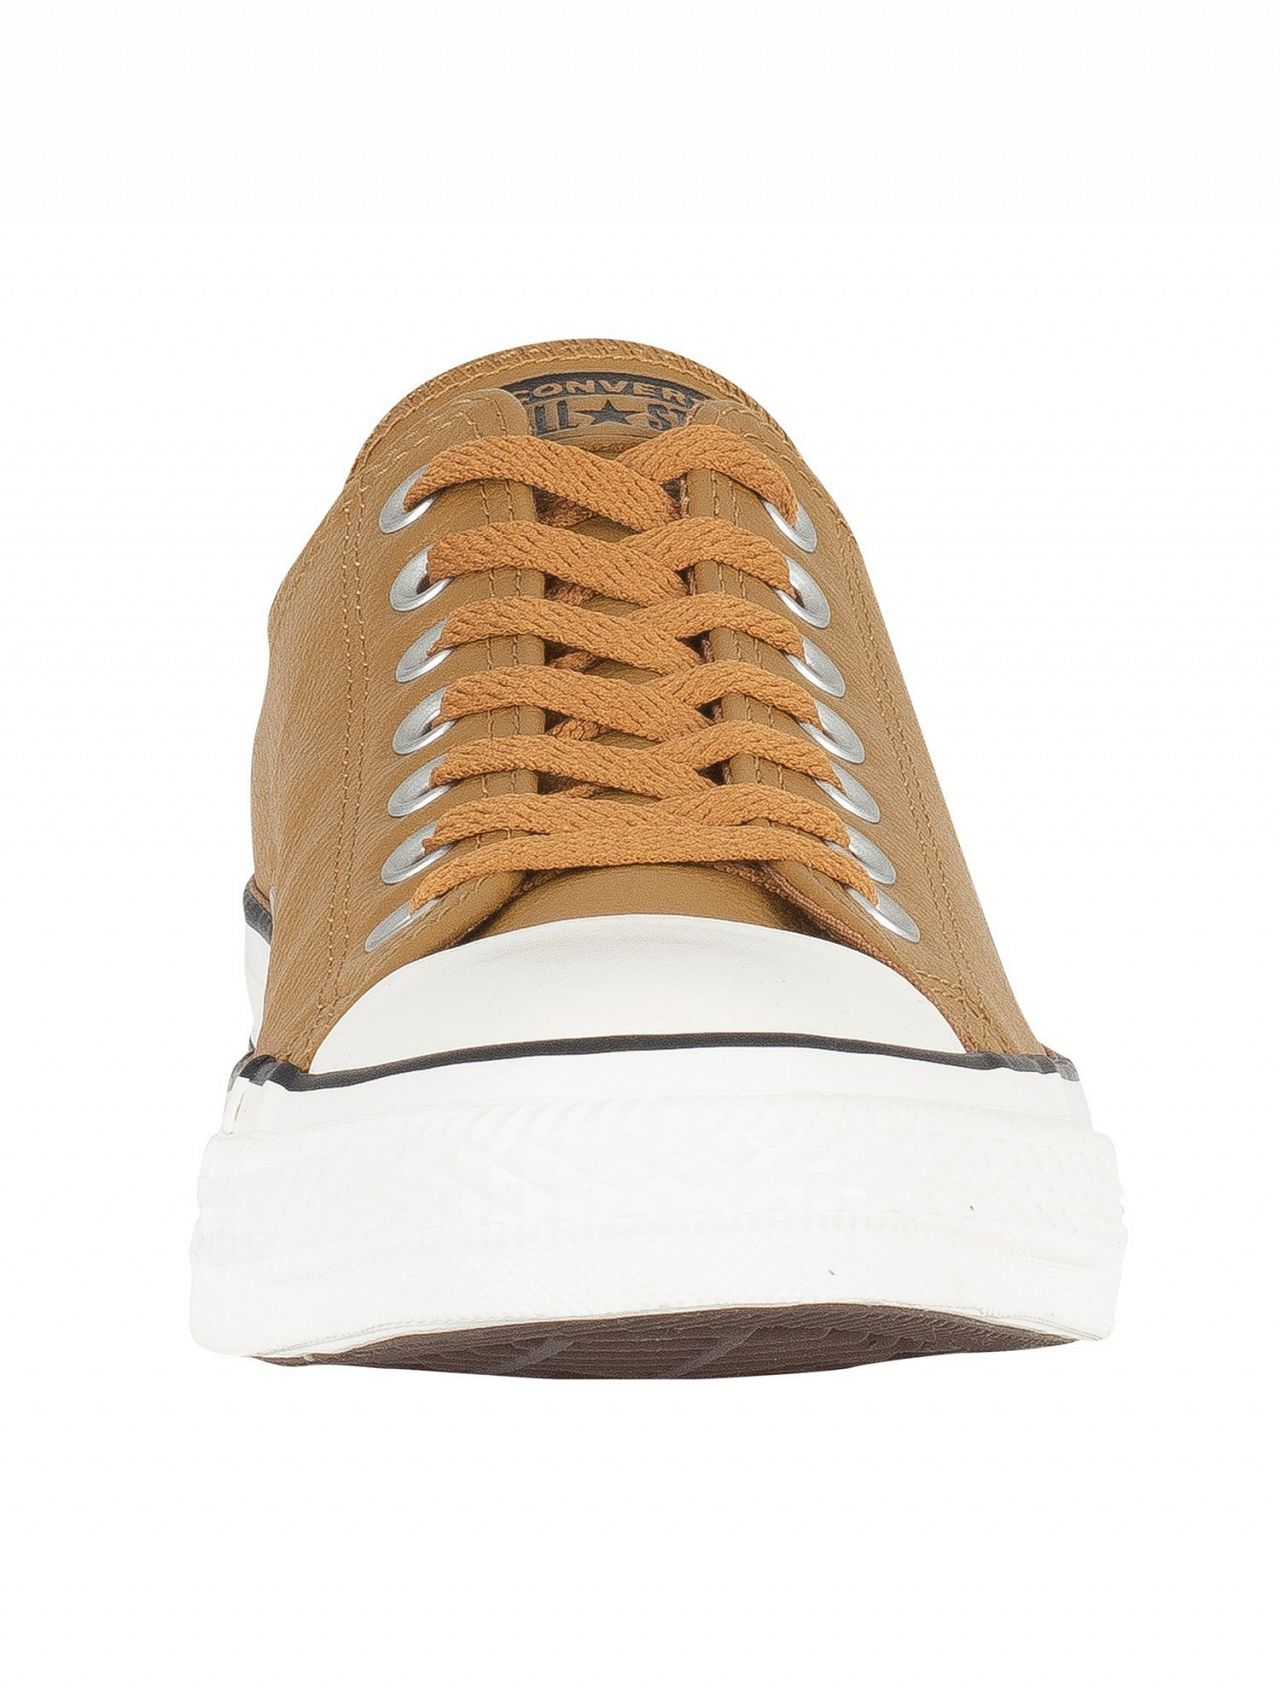 17b86260480d Converse Burnt Caramel CT All Star Ox Leather Trainers